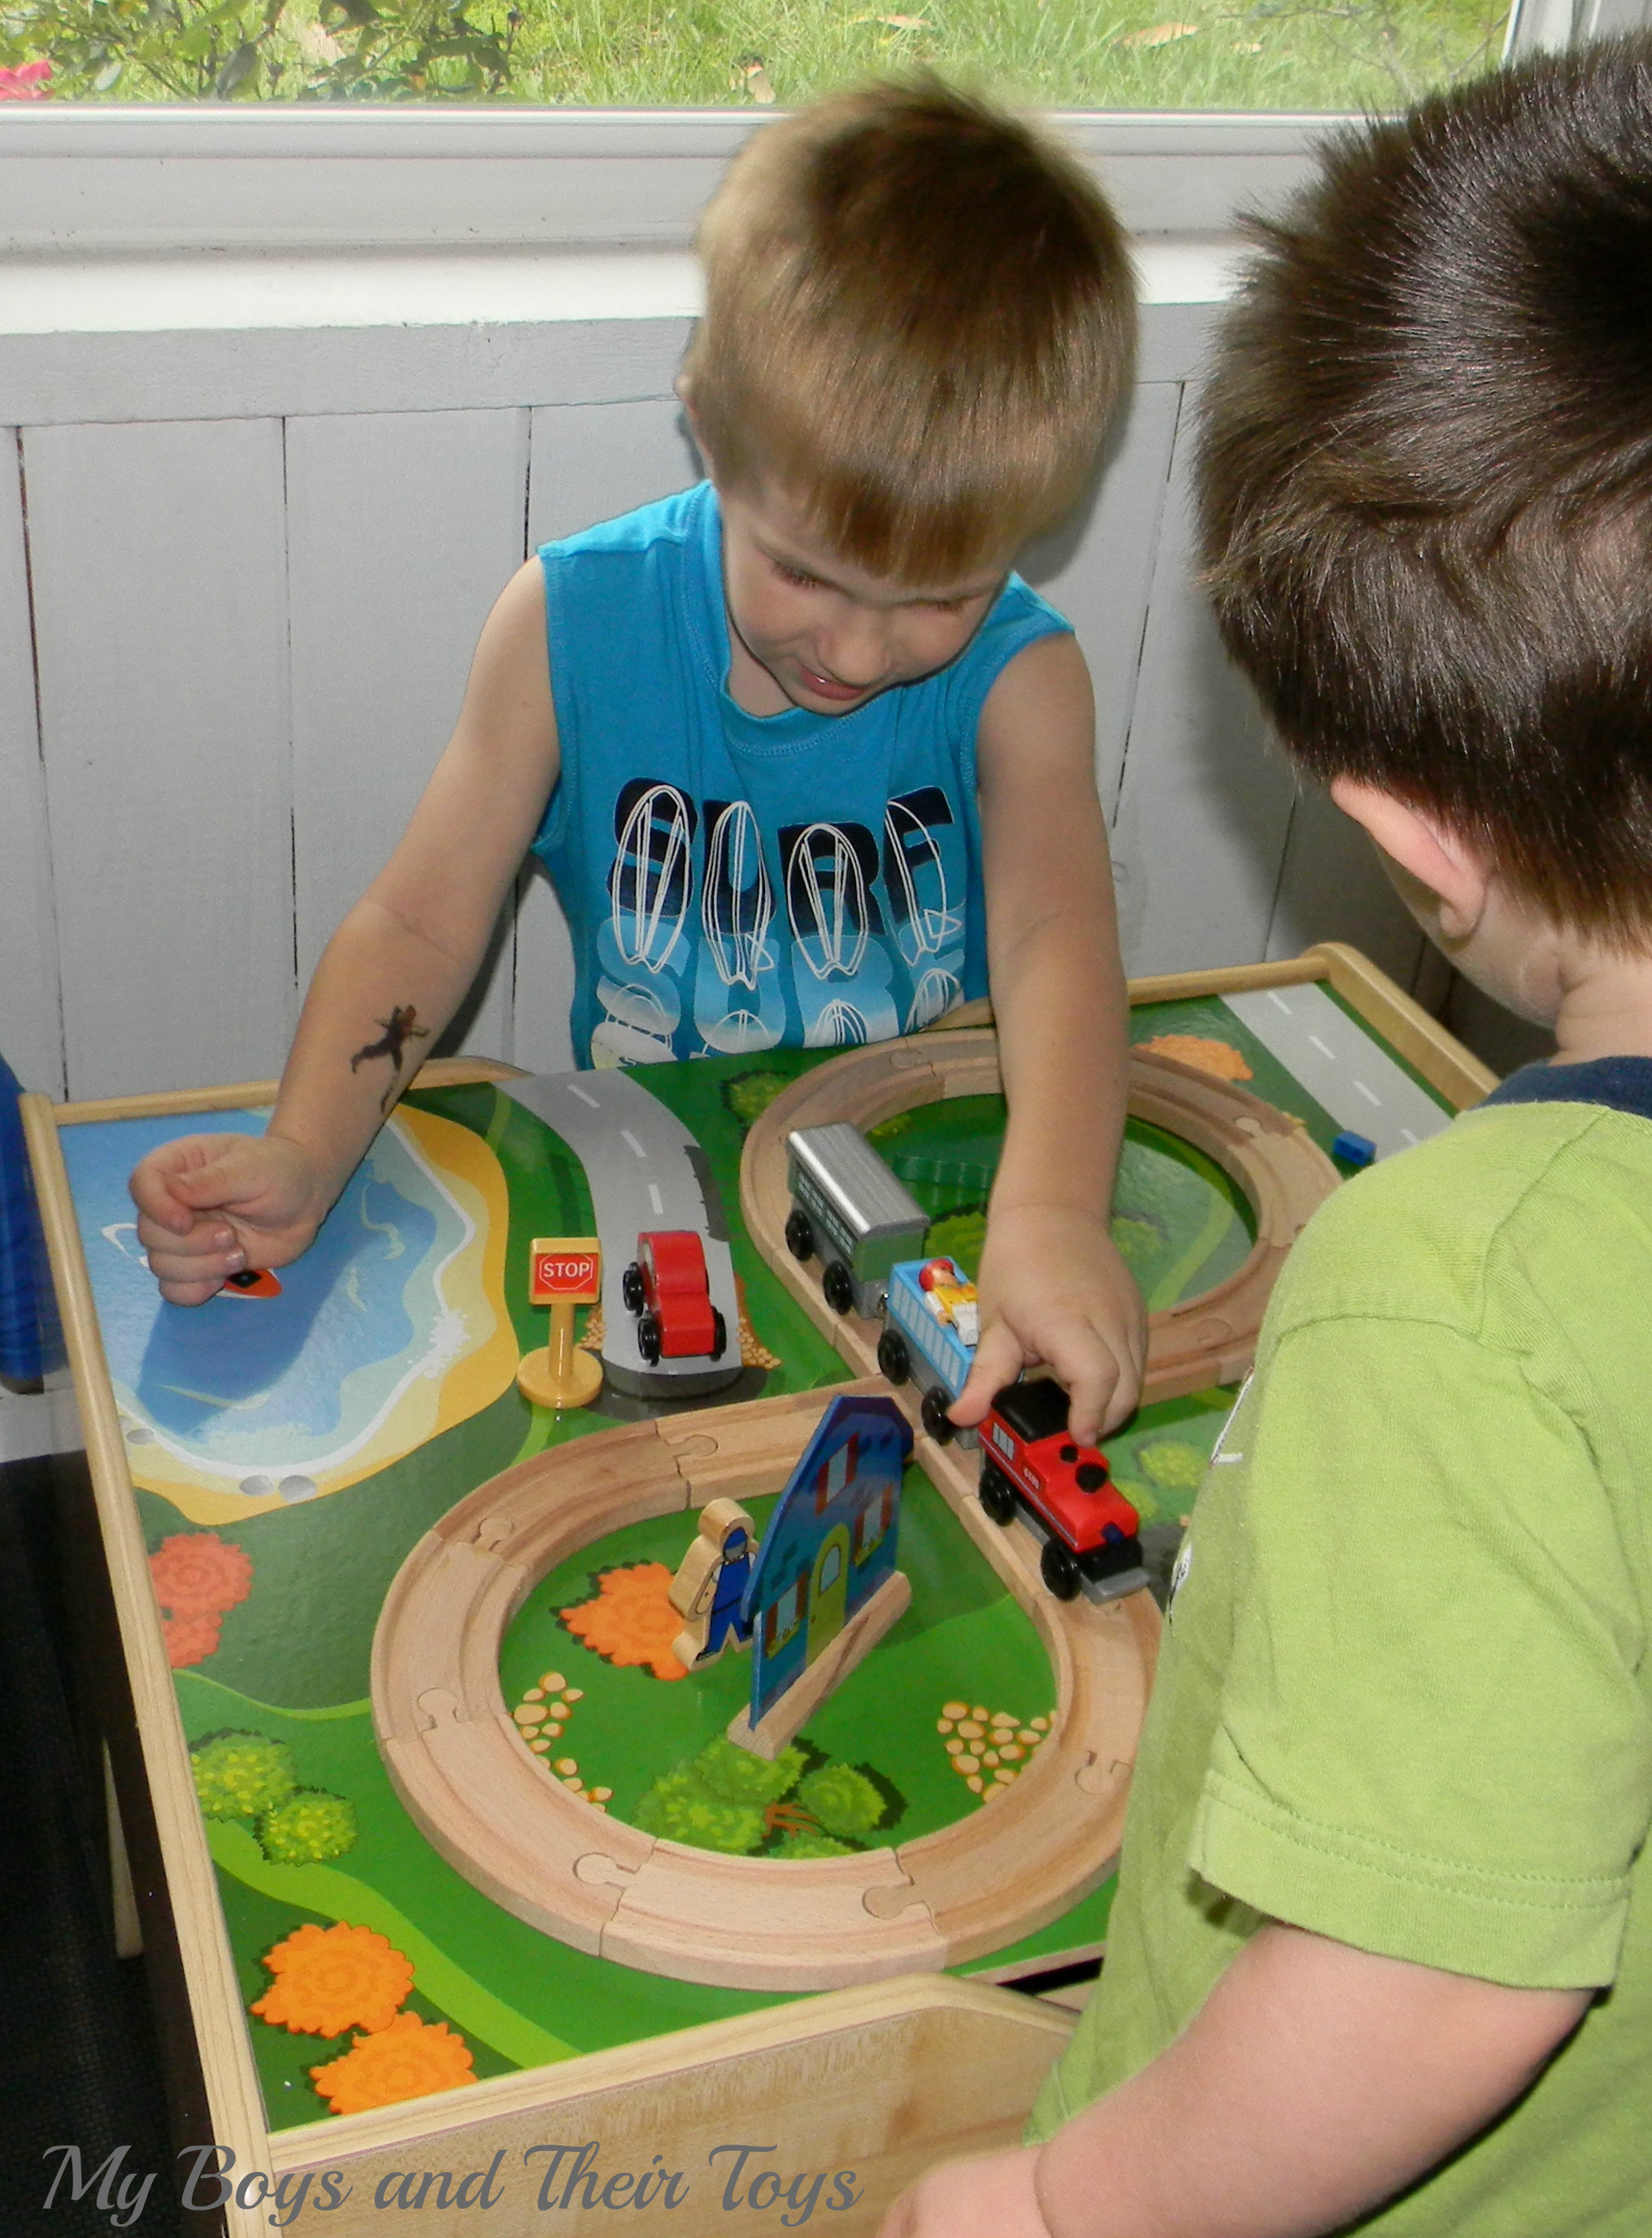 Superieur The KidKraft 2 In 1 Activity Table Is Crafted With Quality Products,  Including Solid Wood Train Tracks. It Includes Accessories Like Trees,  People, ...